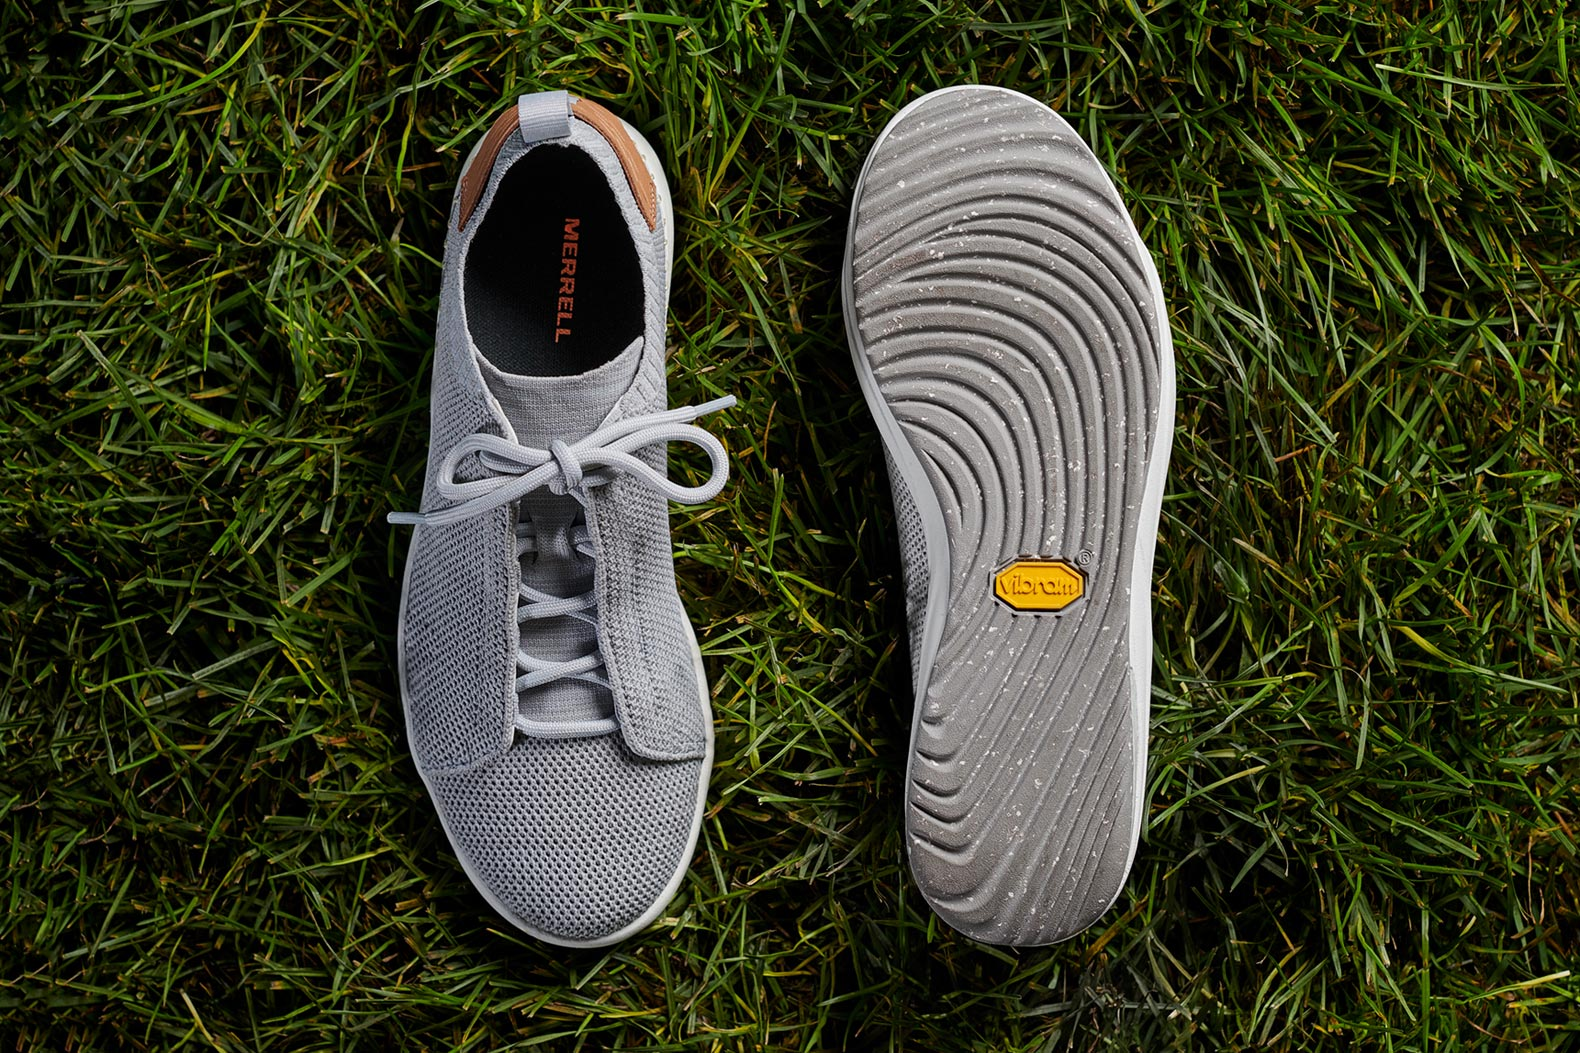 b4dd7bfdf Outdoor giant Merrell presents its most sustainable shoe to date